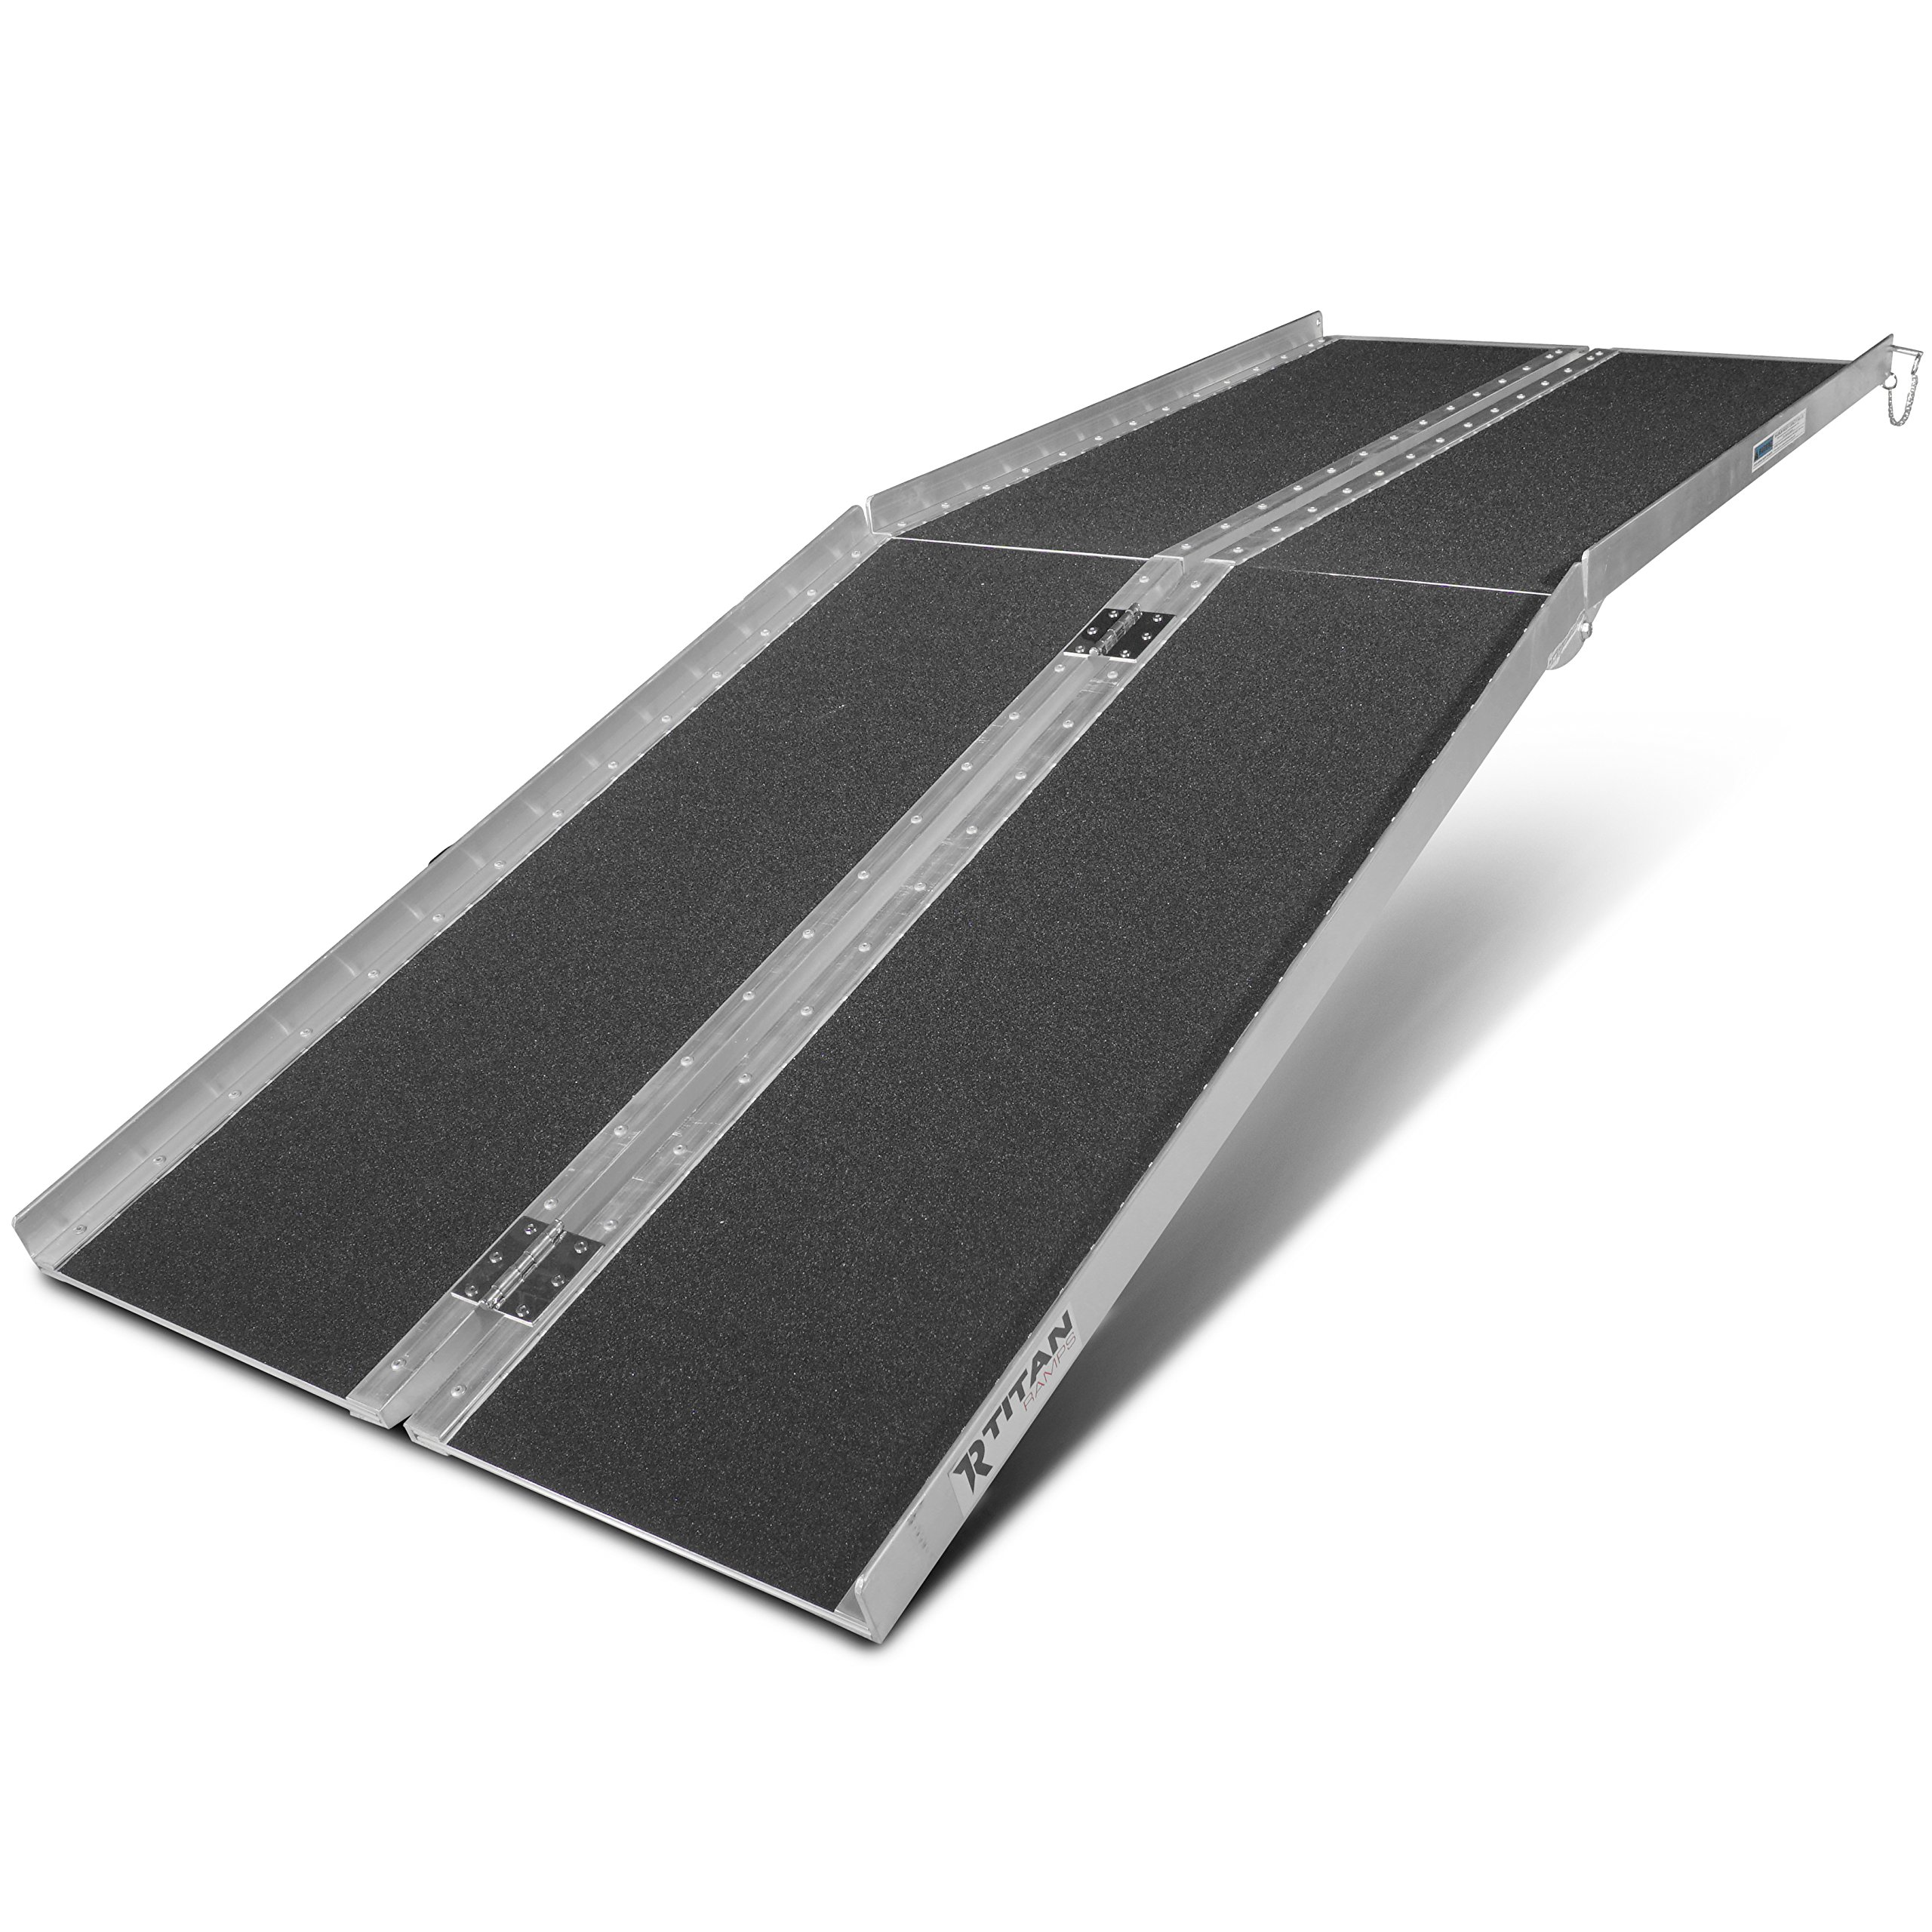 Titan Ramps 7' ft Aluminum Multifold Wheelchair Scooter Mobility Ramp portable 84'' (MF7) by Titan Ramps